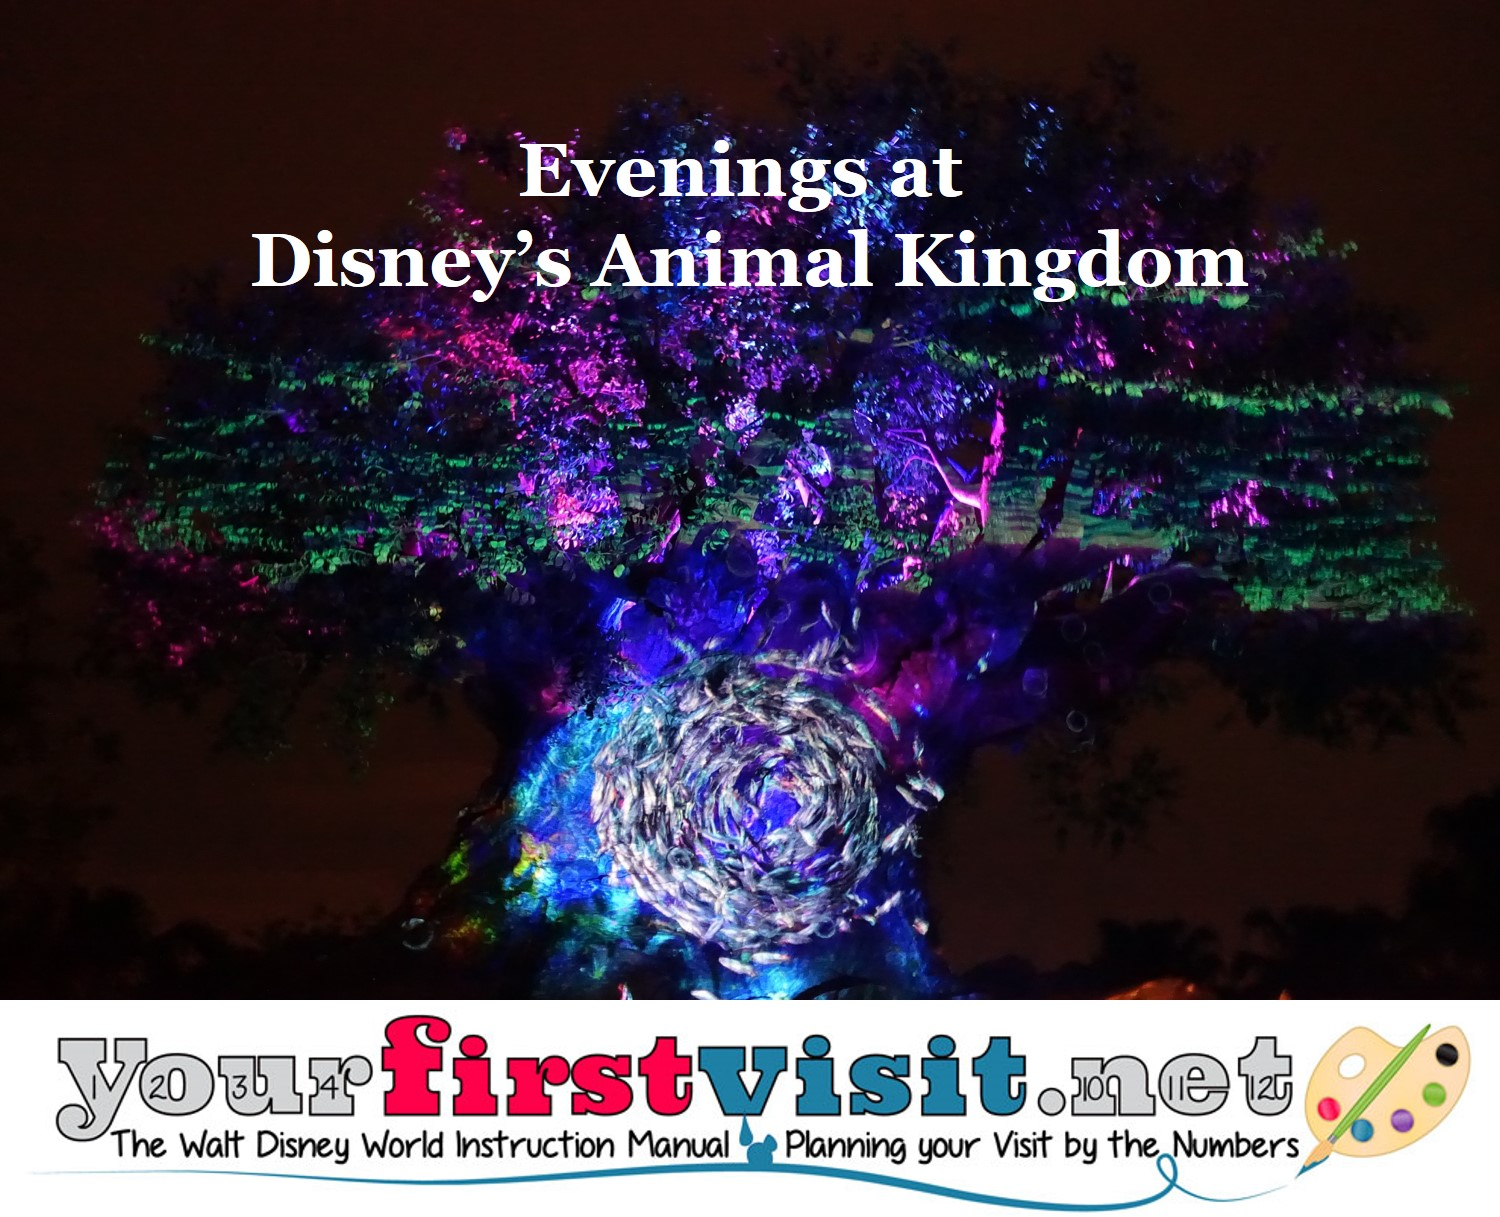 Evenings at Disney's Animal Kingdom from yourfirstvisit.net